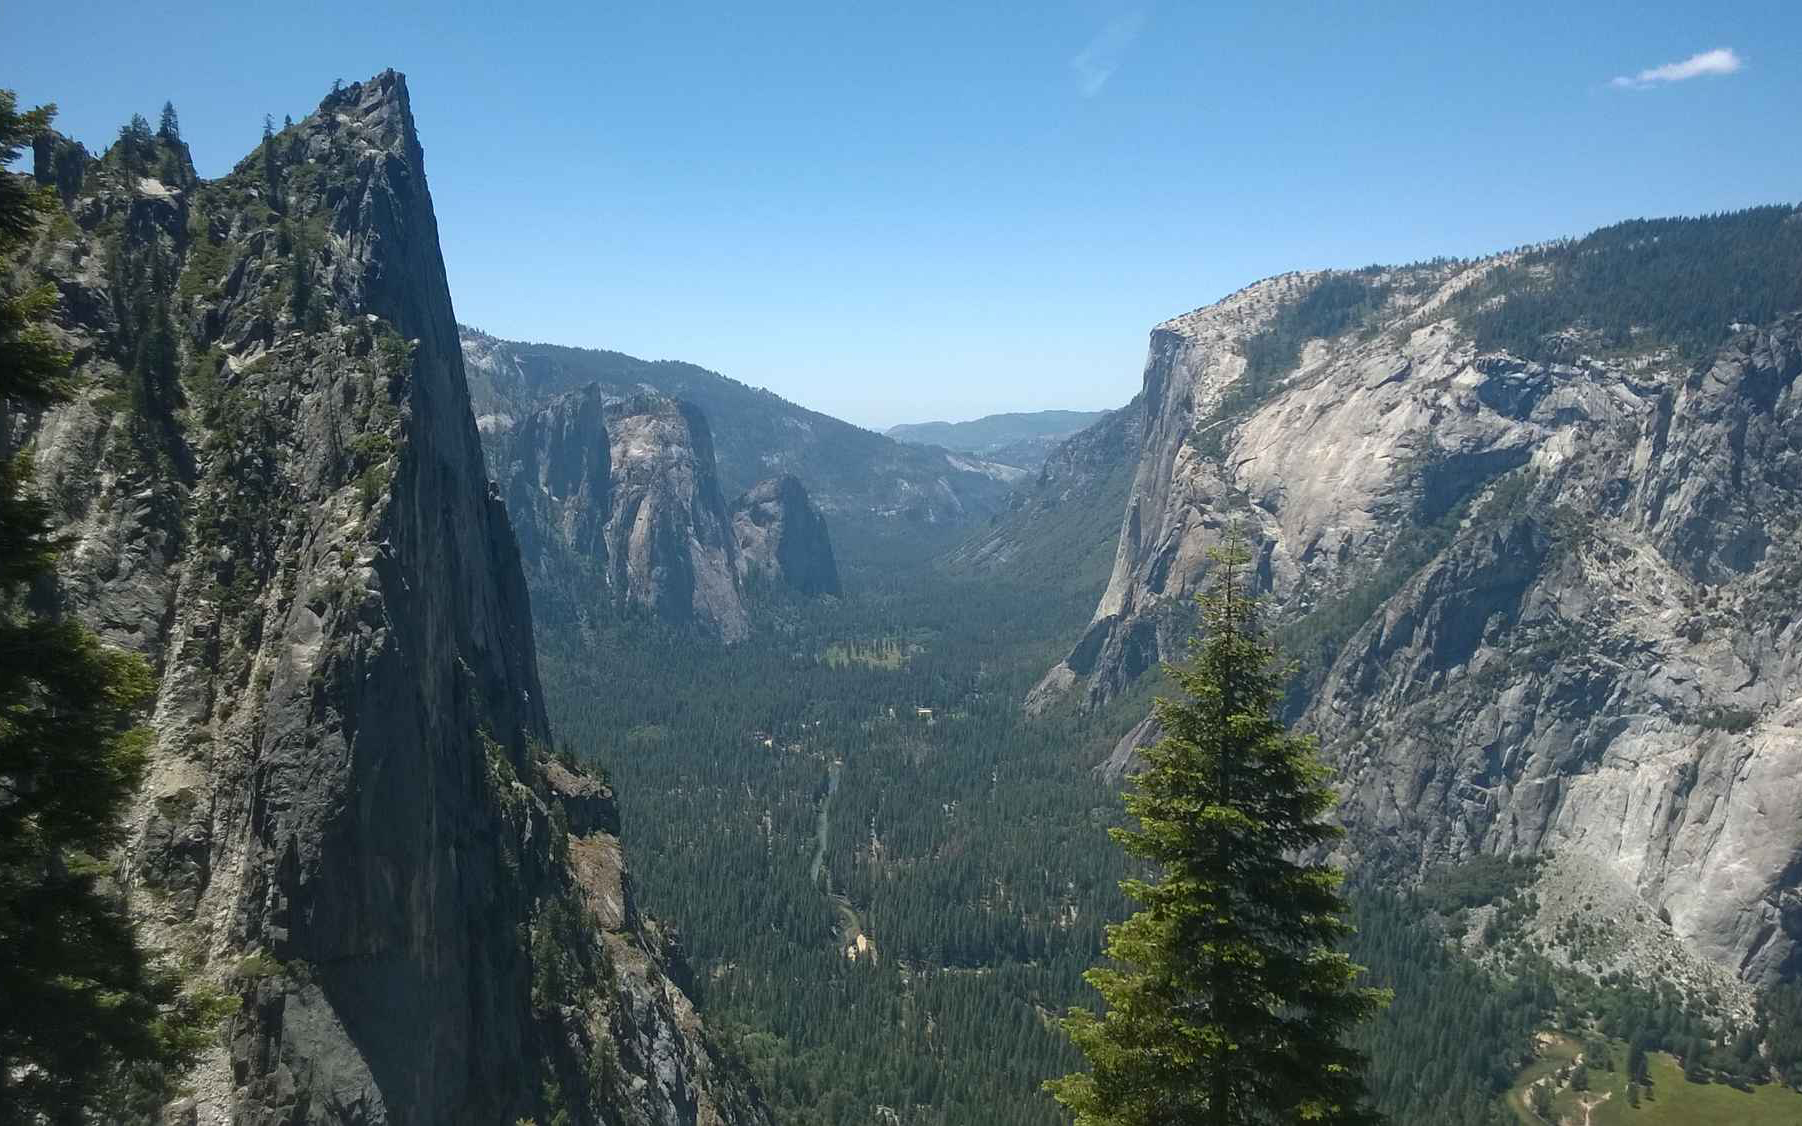 YOSEMITE'S 10 BEST HIKES